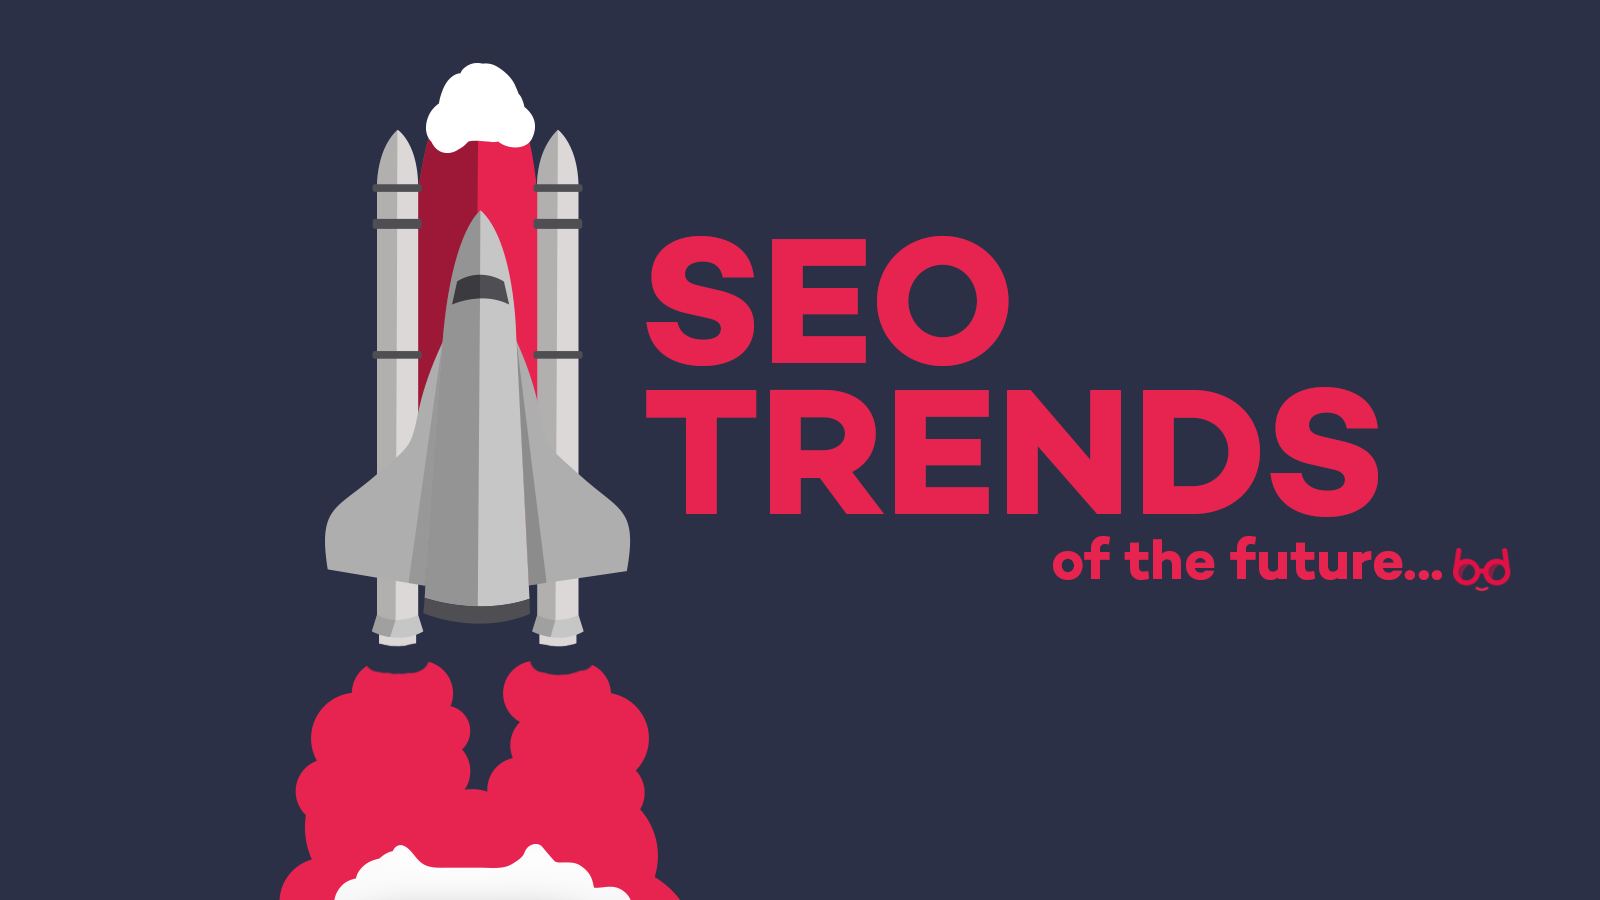 SEO Trends of the Future